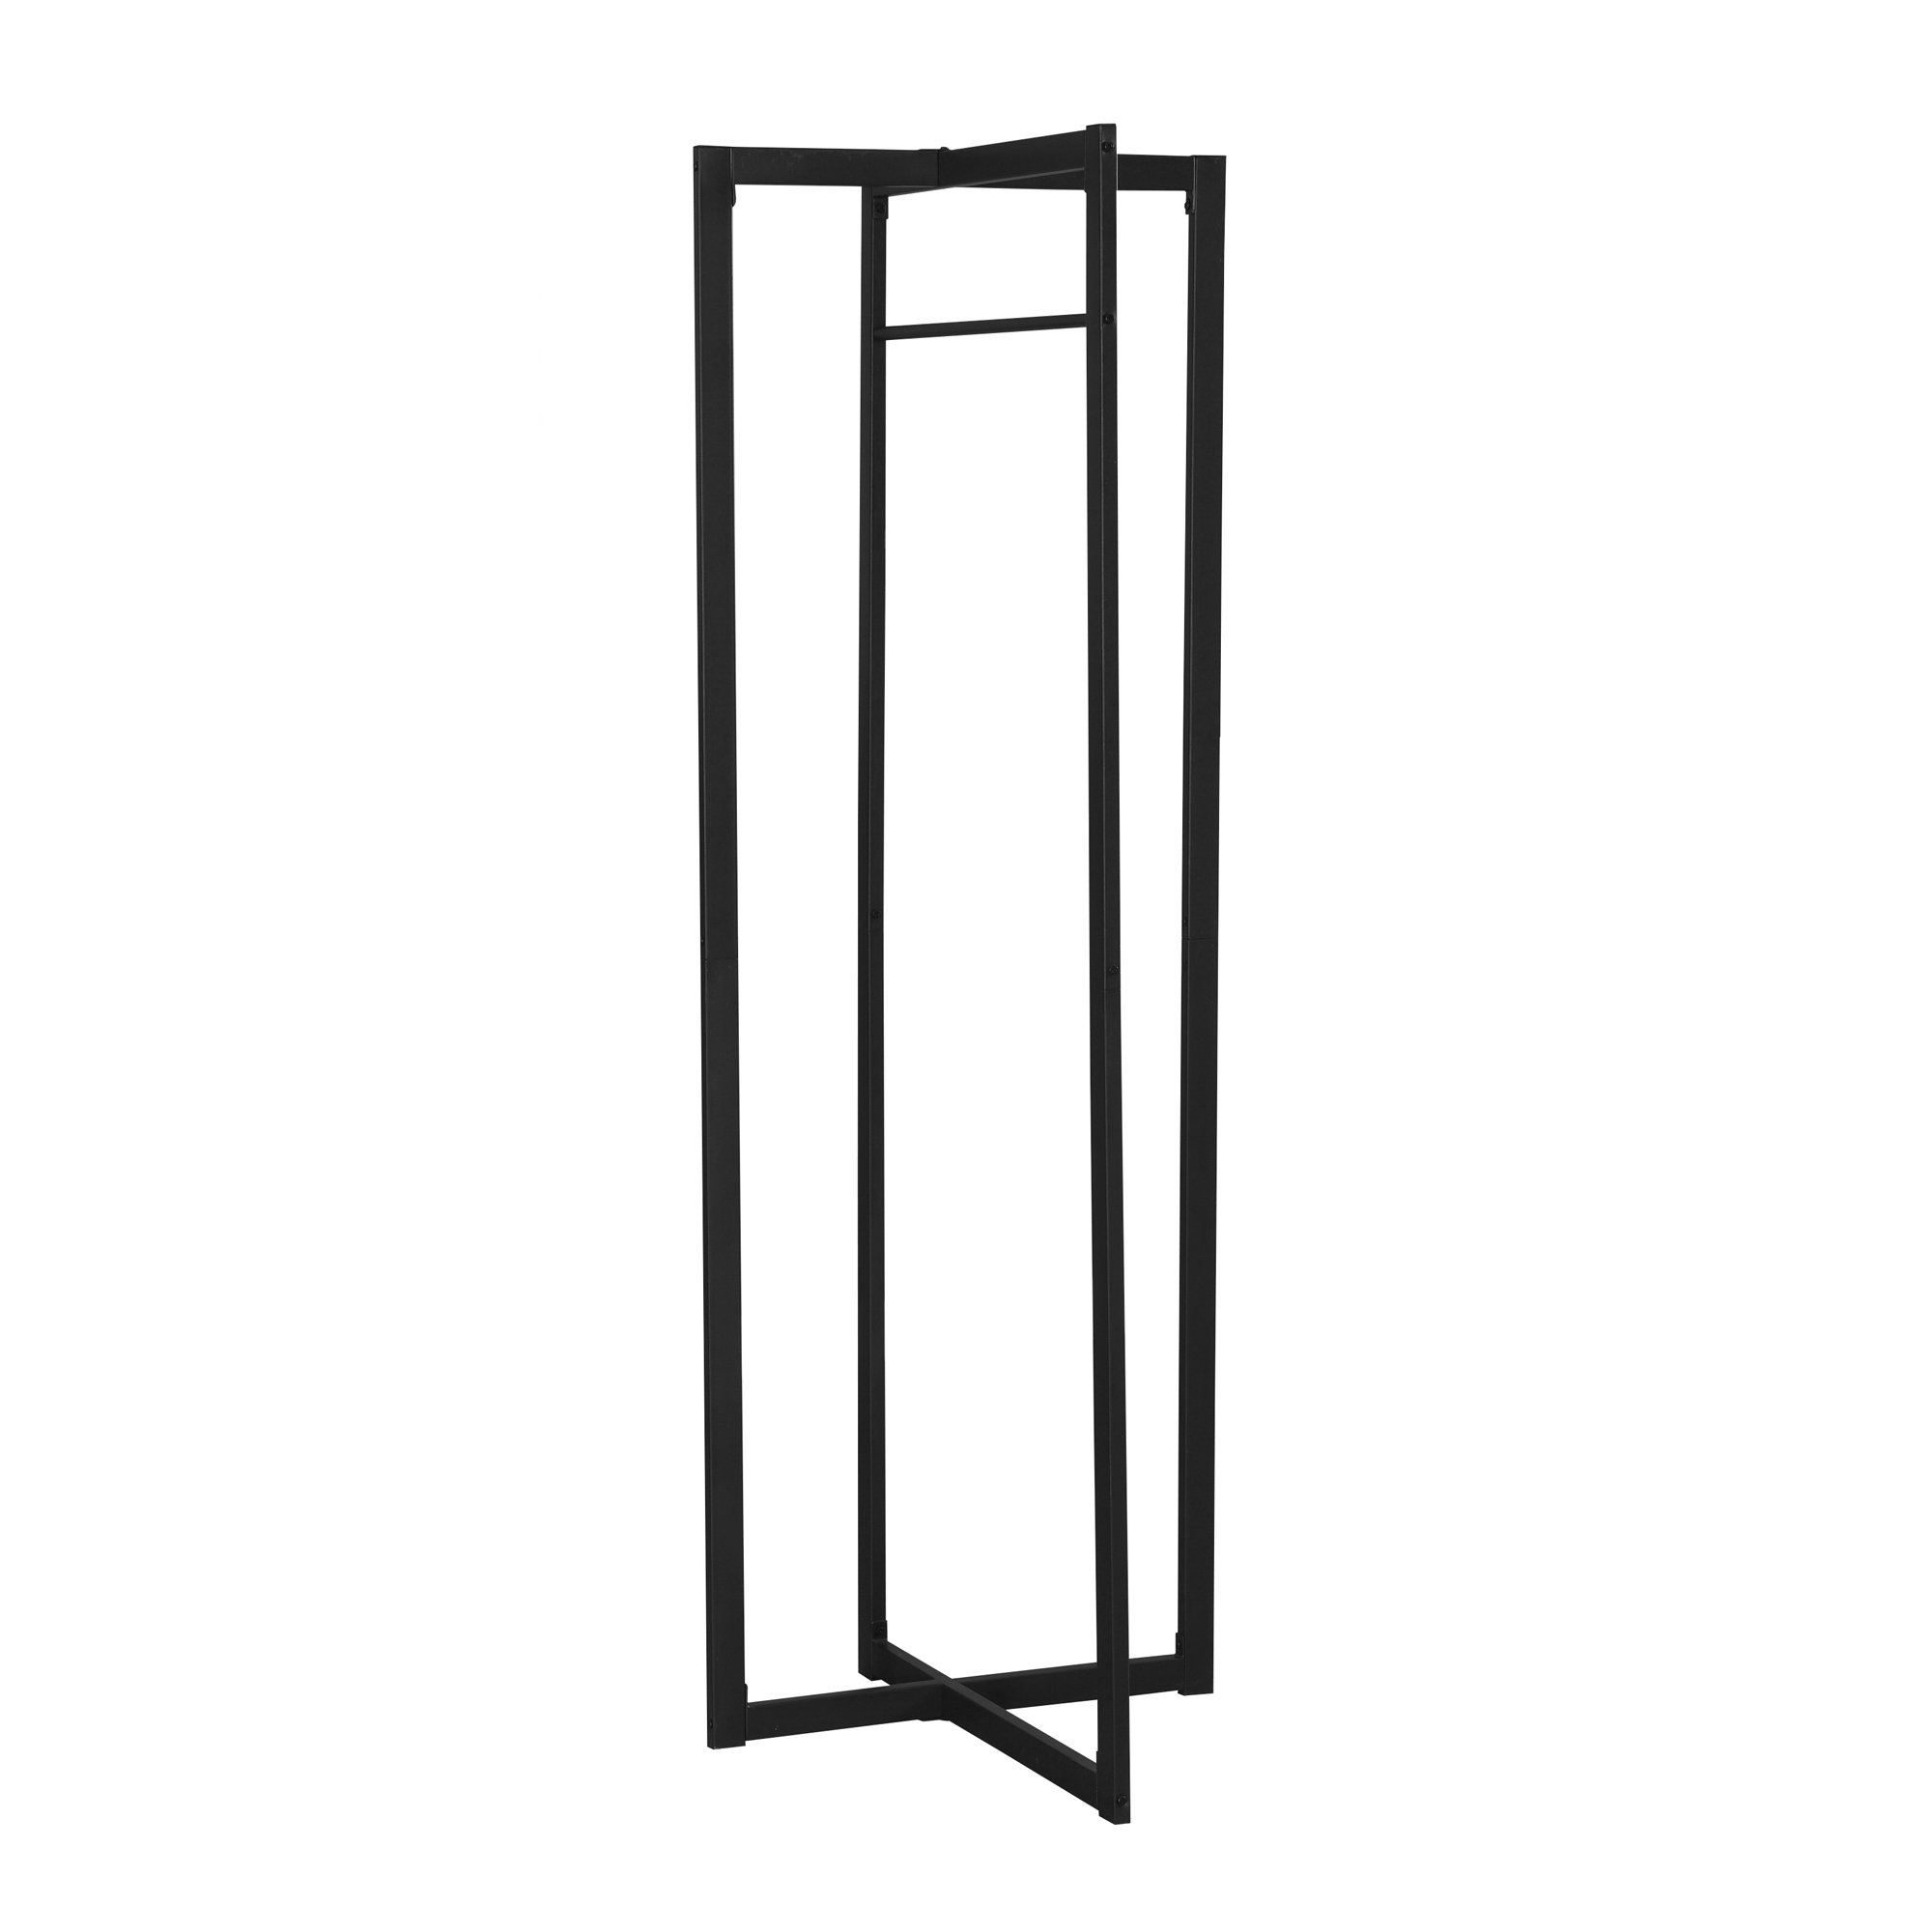 "25.5"" x 27.5"" x 72.25"" Black, Metal - Coat Rack"